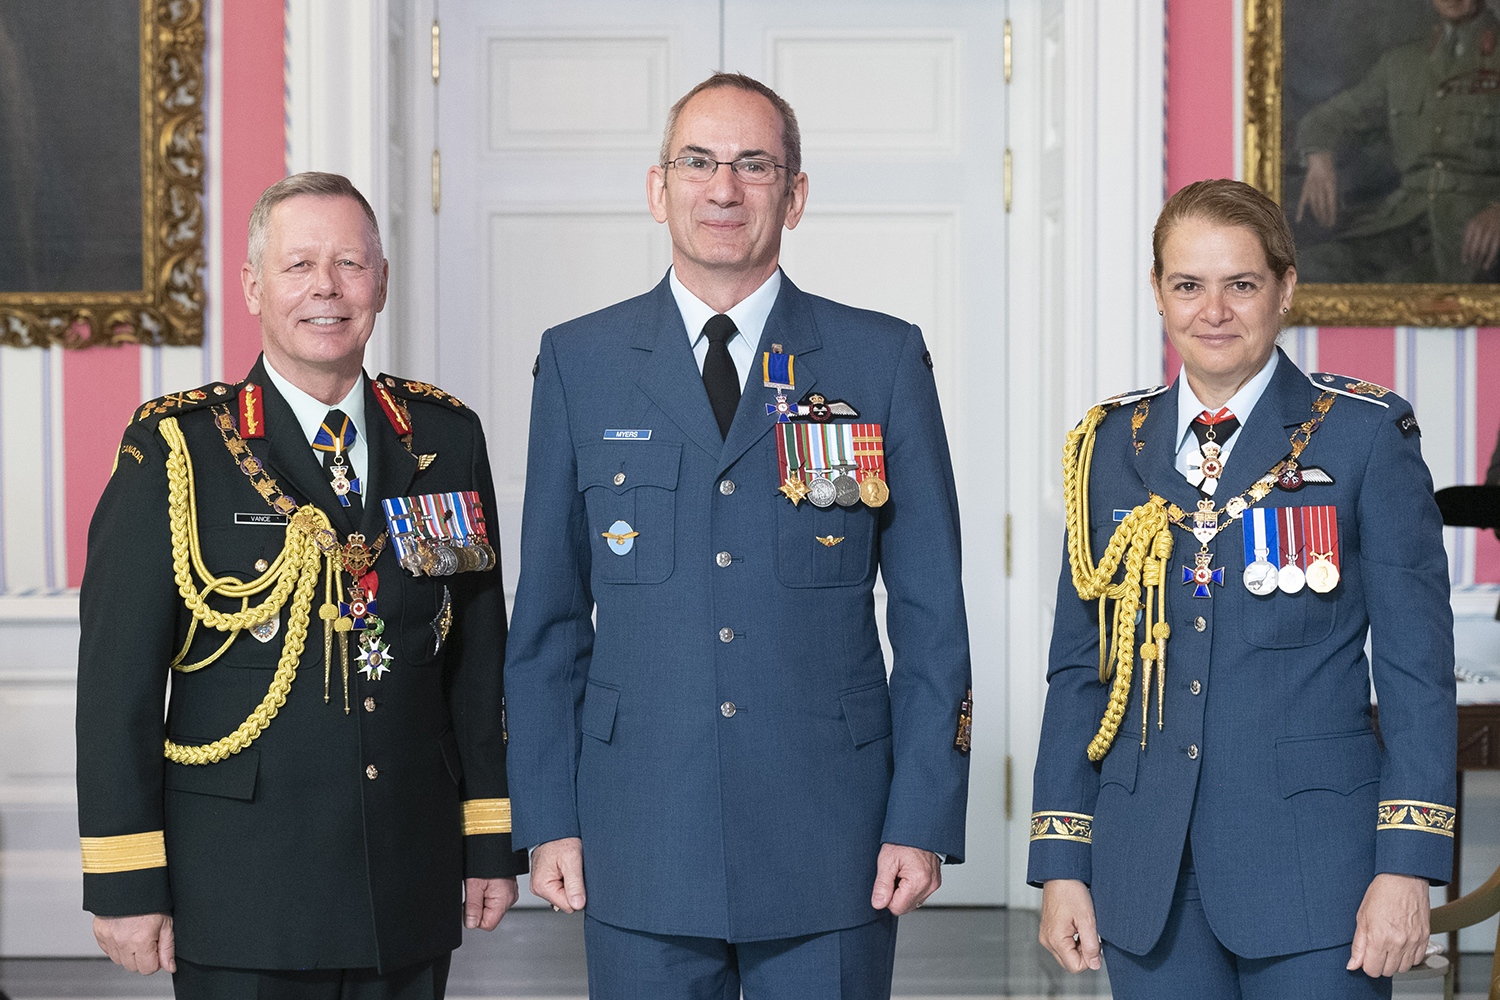 Chief Warrant Officer David Basil Myers, M.M.M., C.D. (centre) stands with Governor-General Julie Payette and Chief of the Defence Staff General Jonathan Vance after receiving the Member insignia of the Order of Military Merit from the Governor General. PHOTO: Sergeant Johanie Maheu, GG05-2019-0118-050